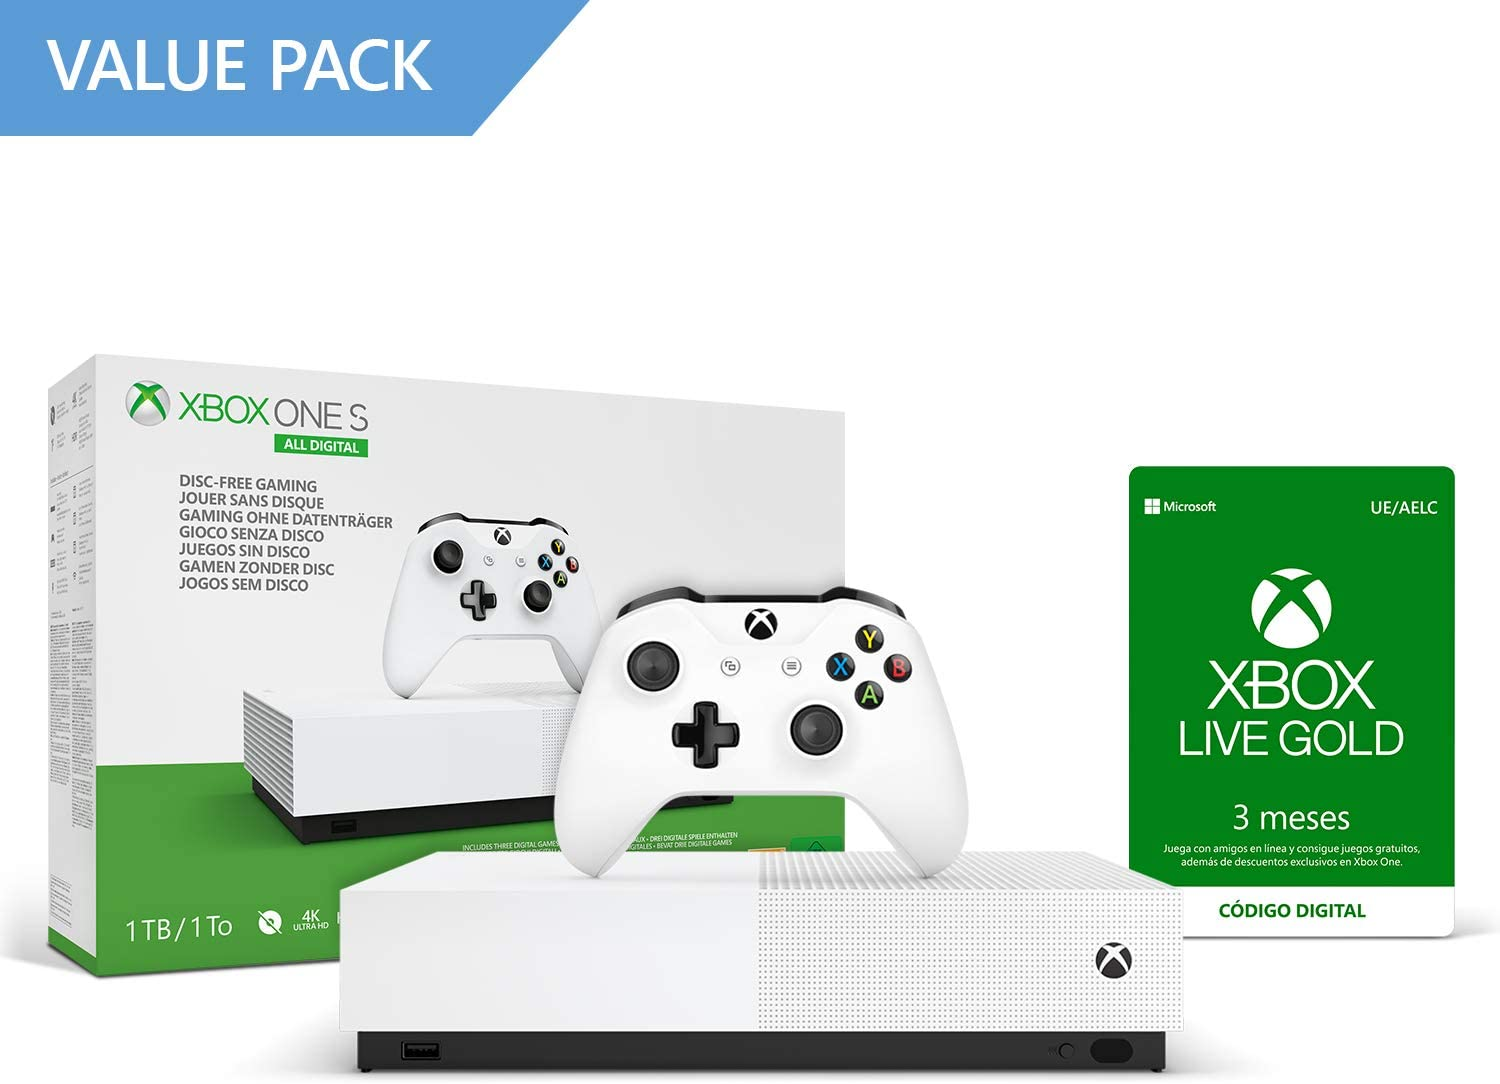 Microsoft Xbox One S All Digital - Consola de 1 TB, color blanco + 4 mes de Xbox Live Gold, 1 mando blanco, Forza Horizon 3 (juego digital), Minecraft (juego digital ...